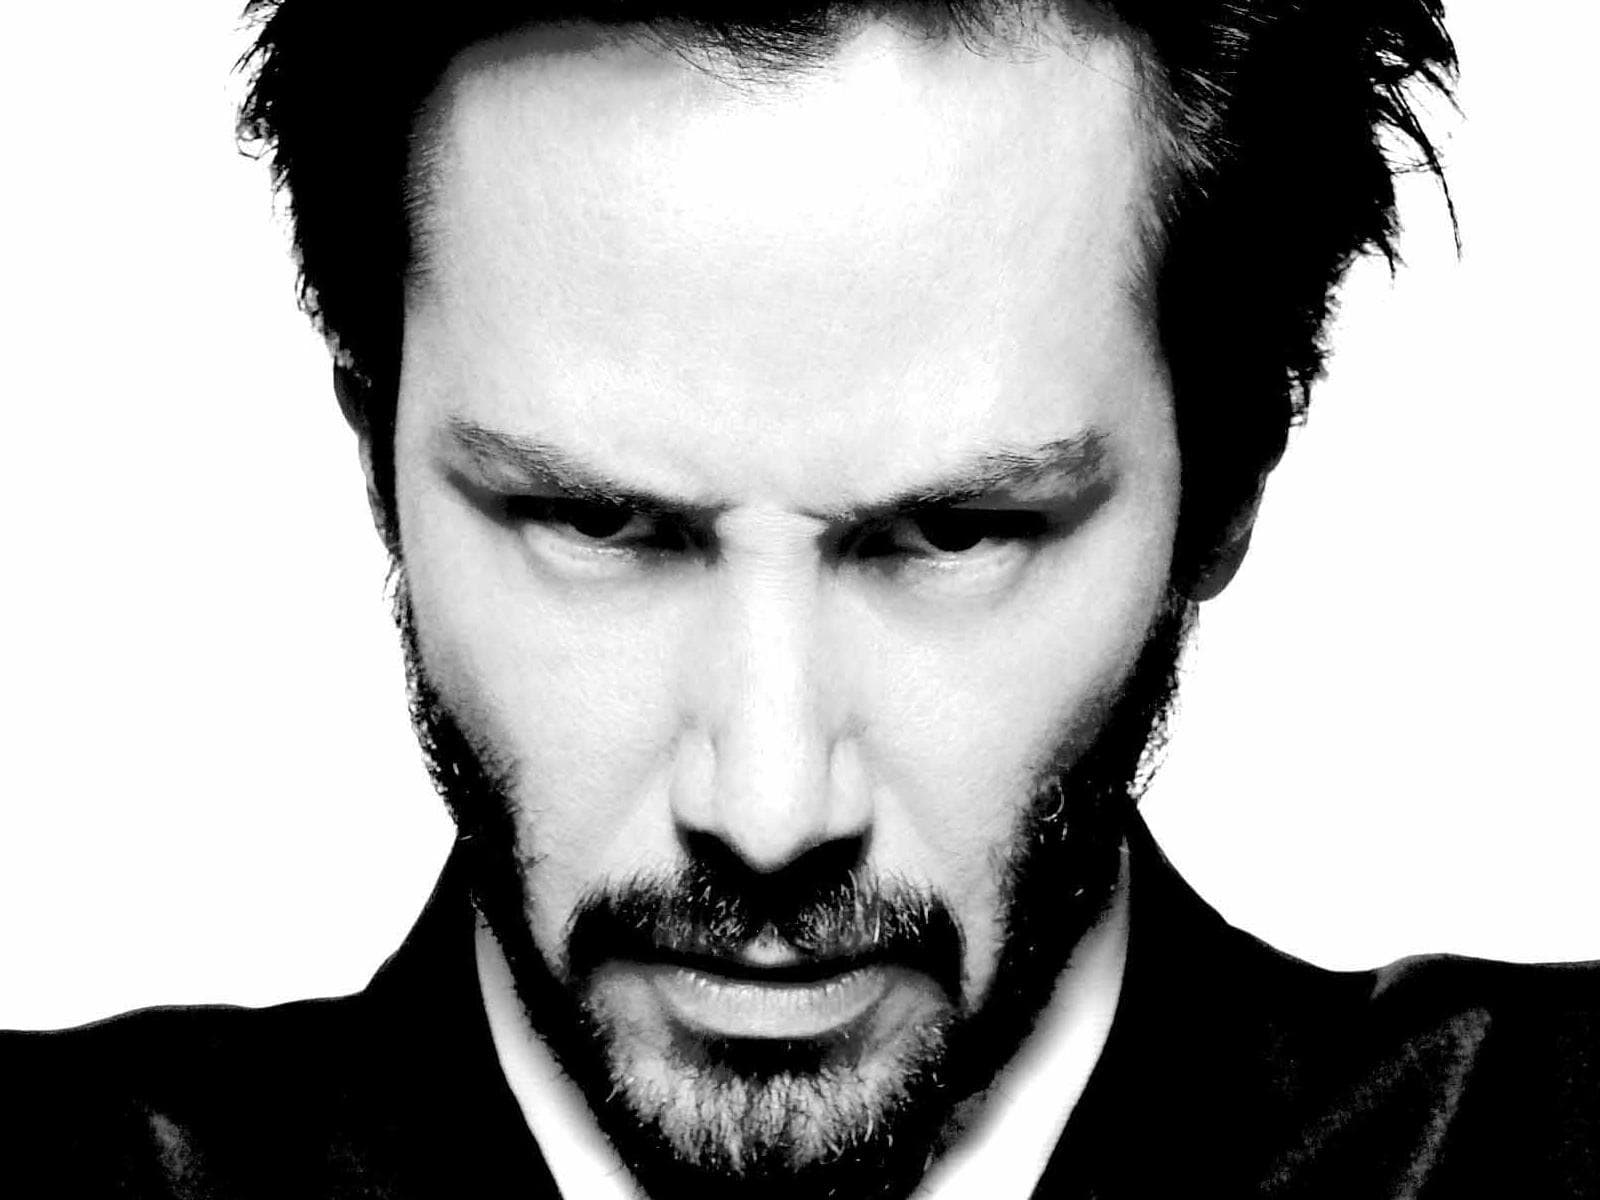 Keanu Reeves Desktop wallpapers